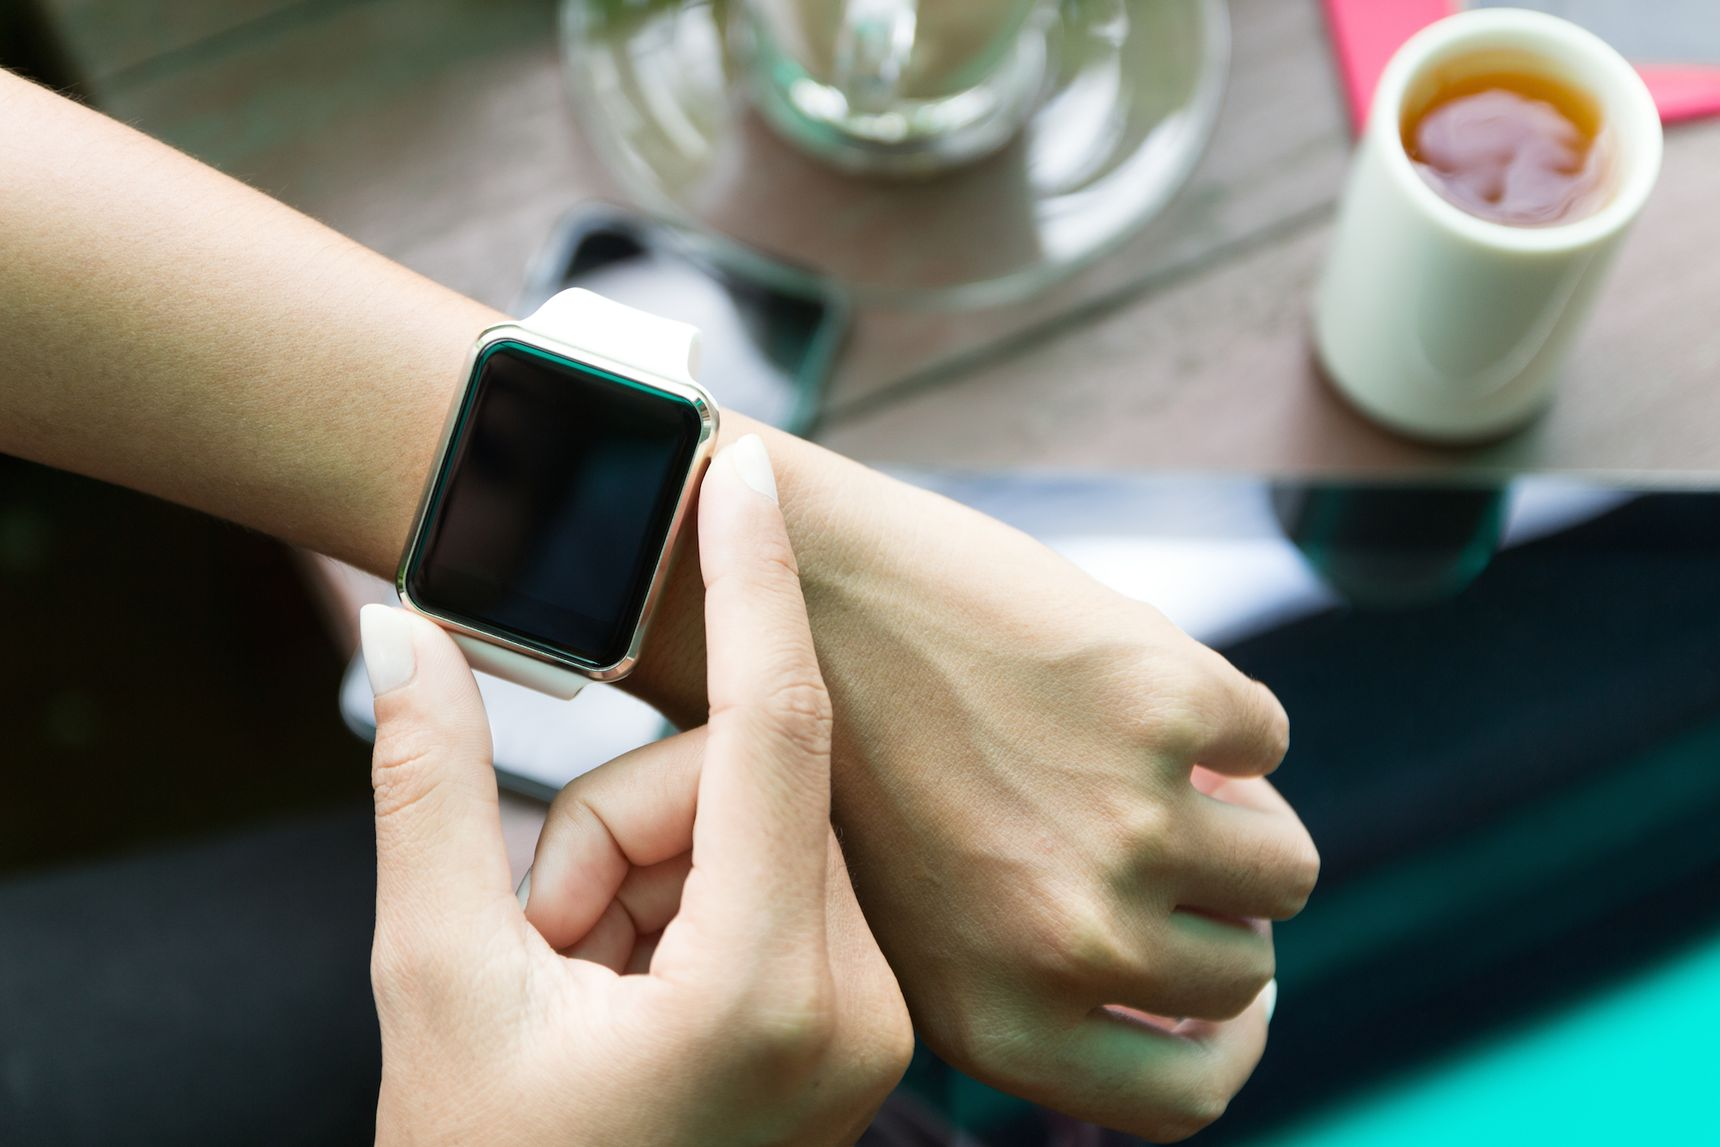 New York's Union Square Cafe will use Apple Watches to Improve Customer Service